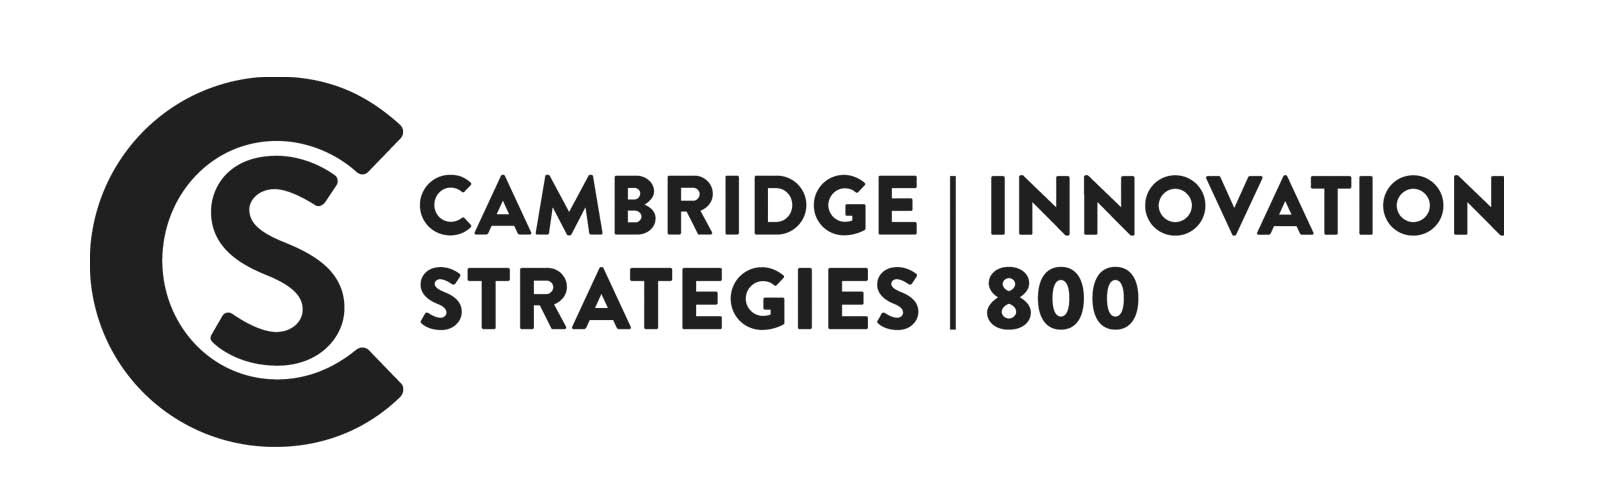 GSD® feature in  the 2017 Cambridge Strategies: Innovation 800